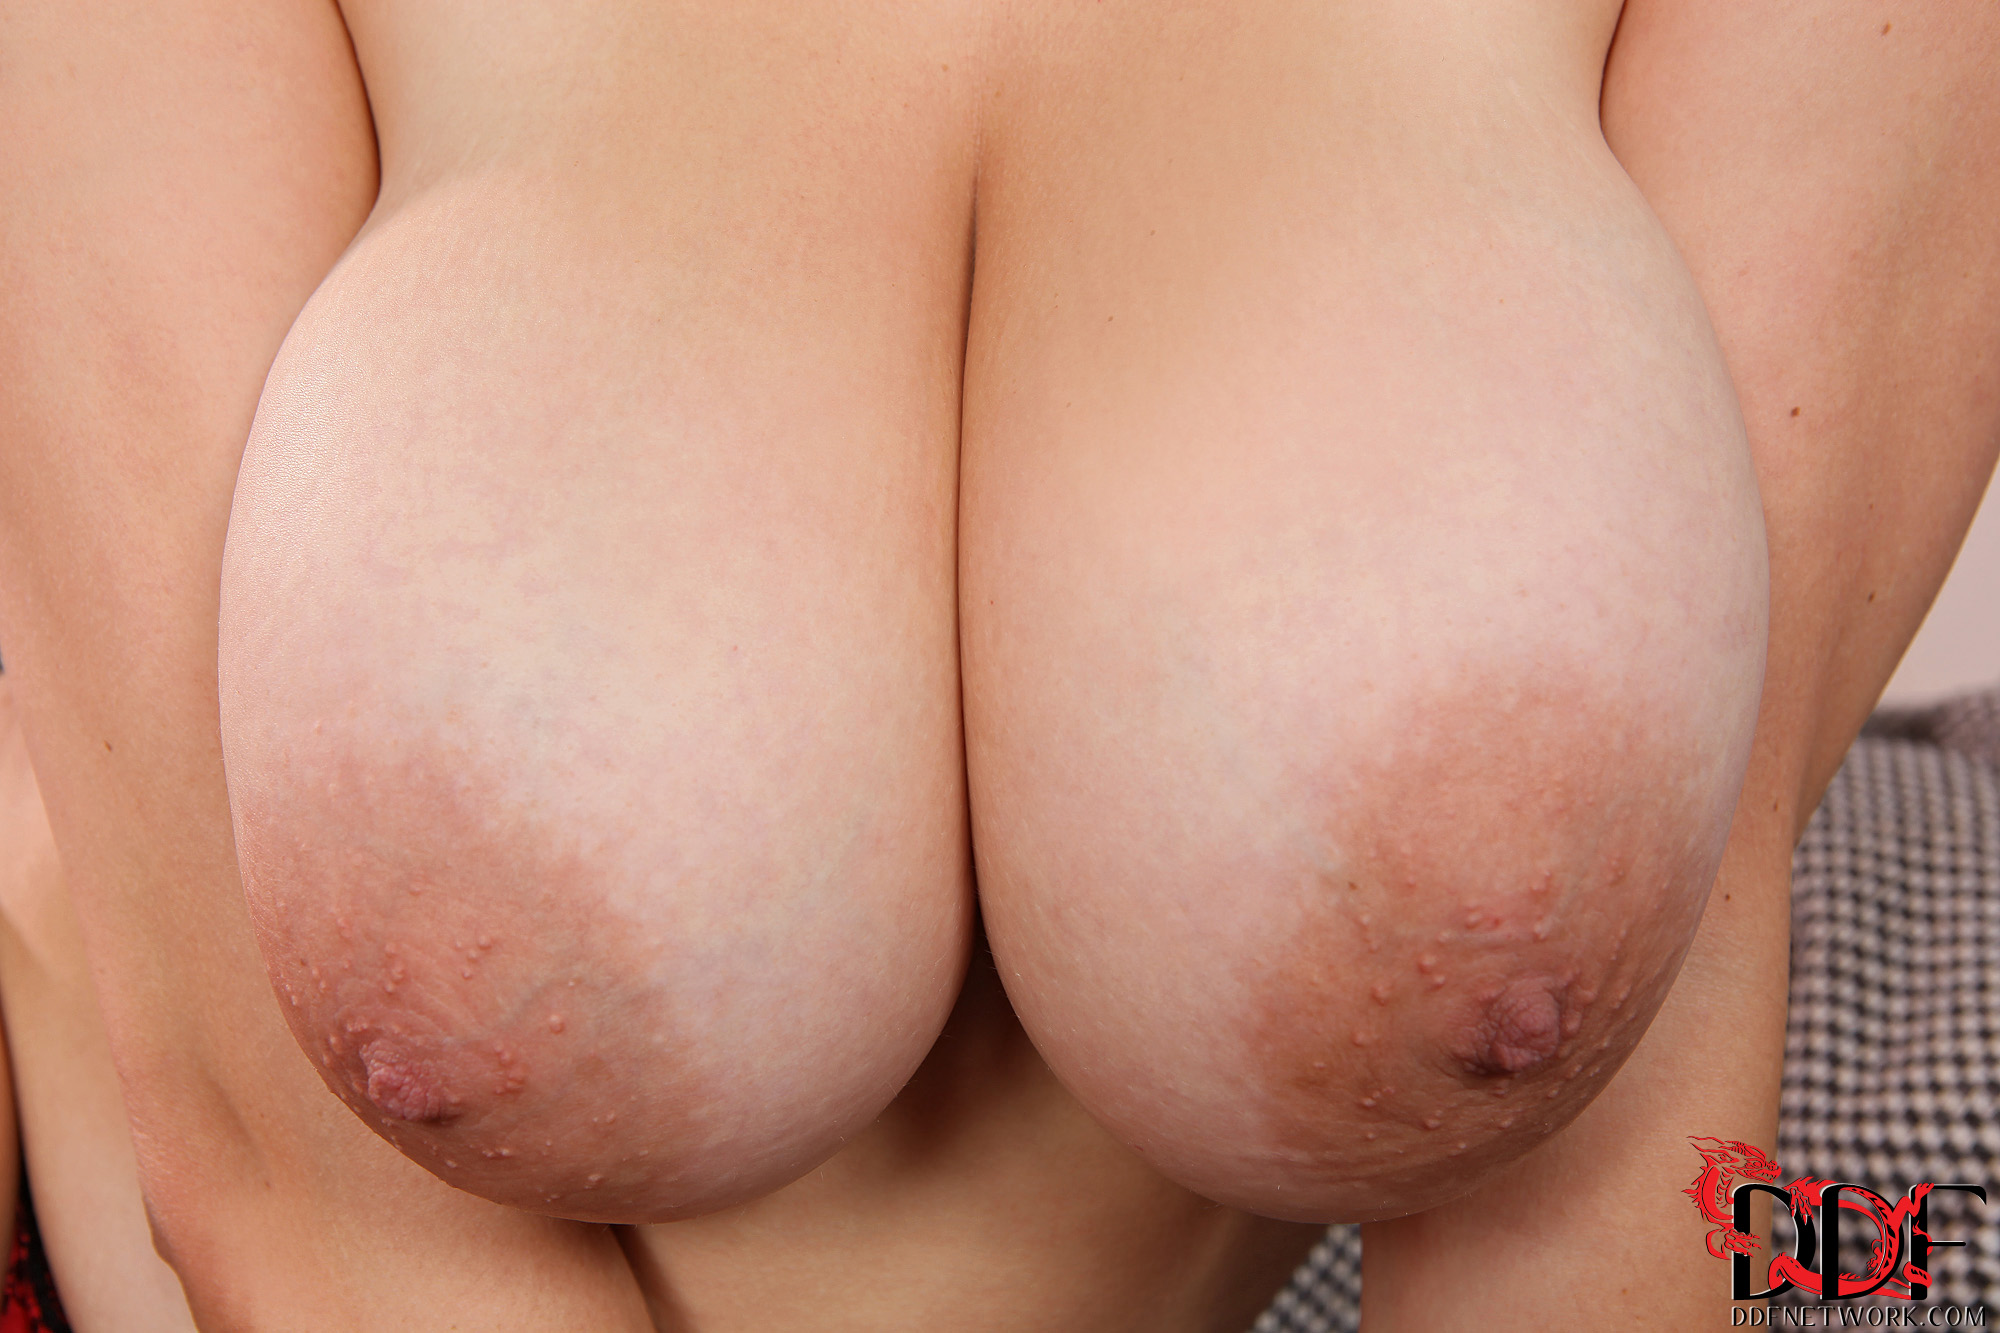 big tits close up pic